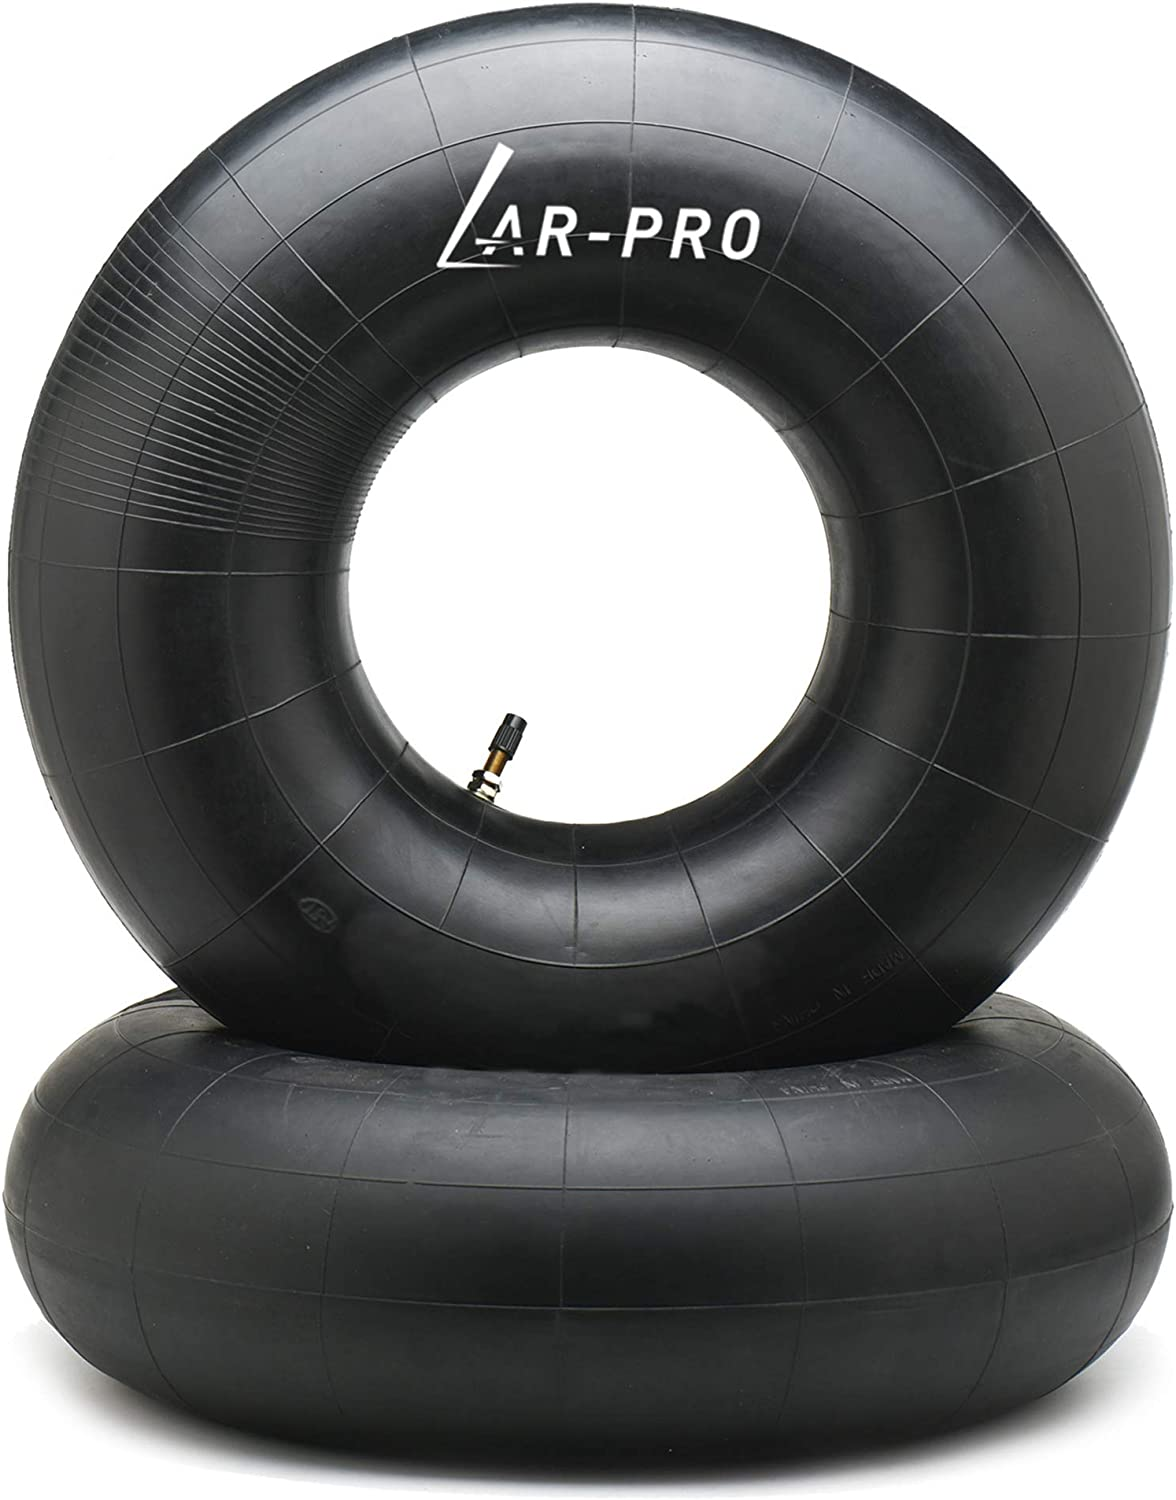 AR-PRO 20x10.00-8, 20x10-8, 20x8.00-8, 20x8-8 Inner Tube Replacement (2-Pack) with TR-13 Straight Valve Stem for Mower/Tractor/Golf Cart/Garden Trailer and More